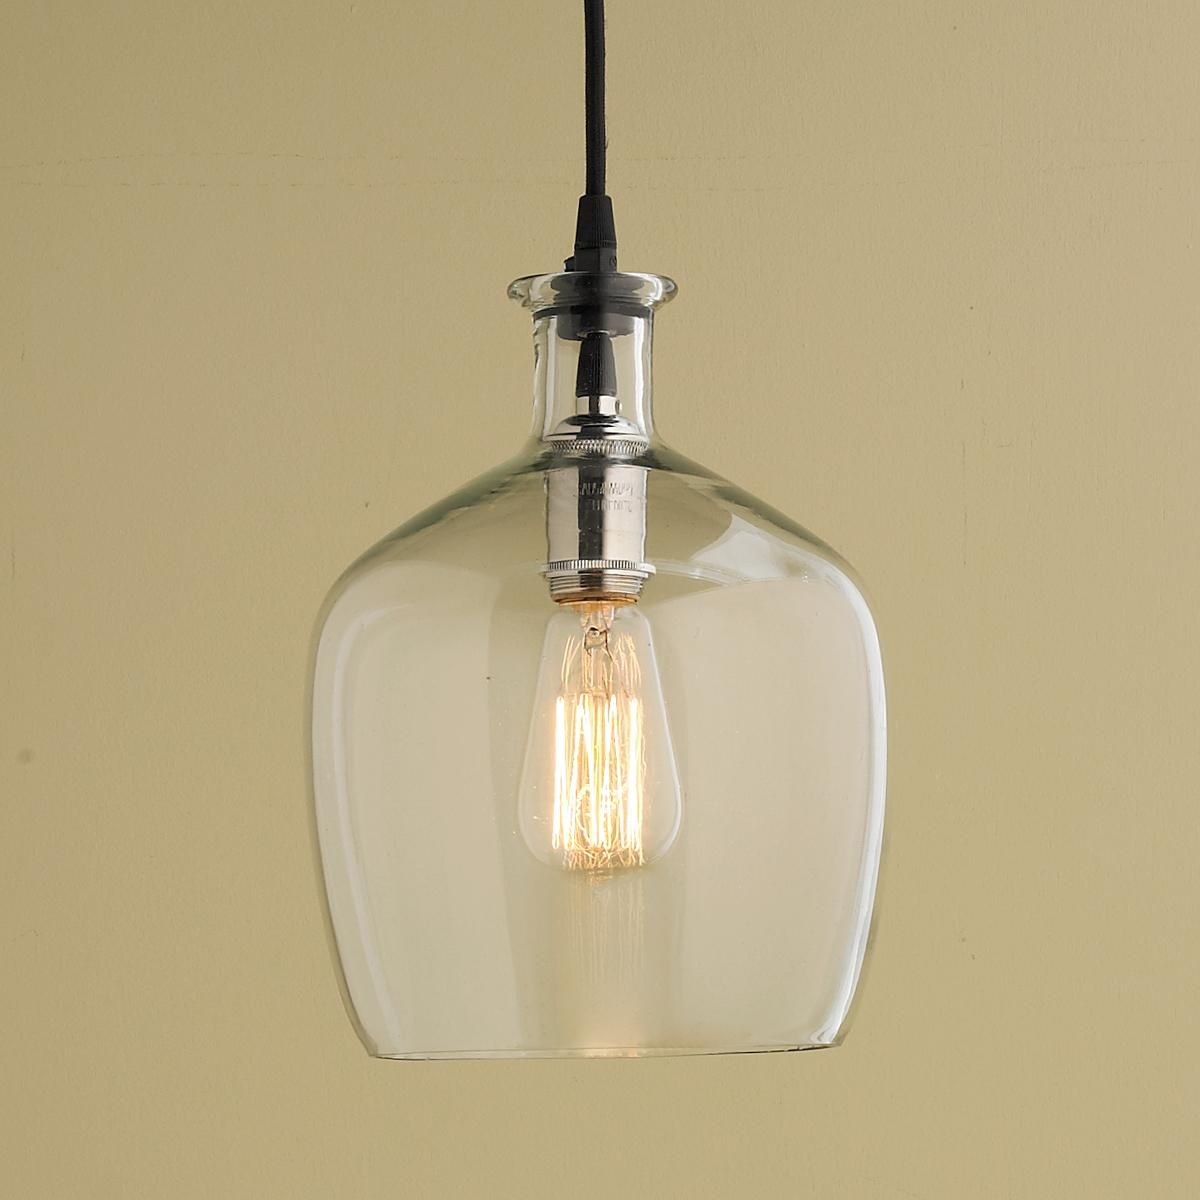 Carafe Glass Pendant Light - Small In 2019